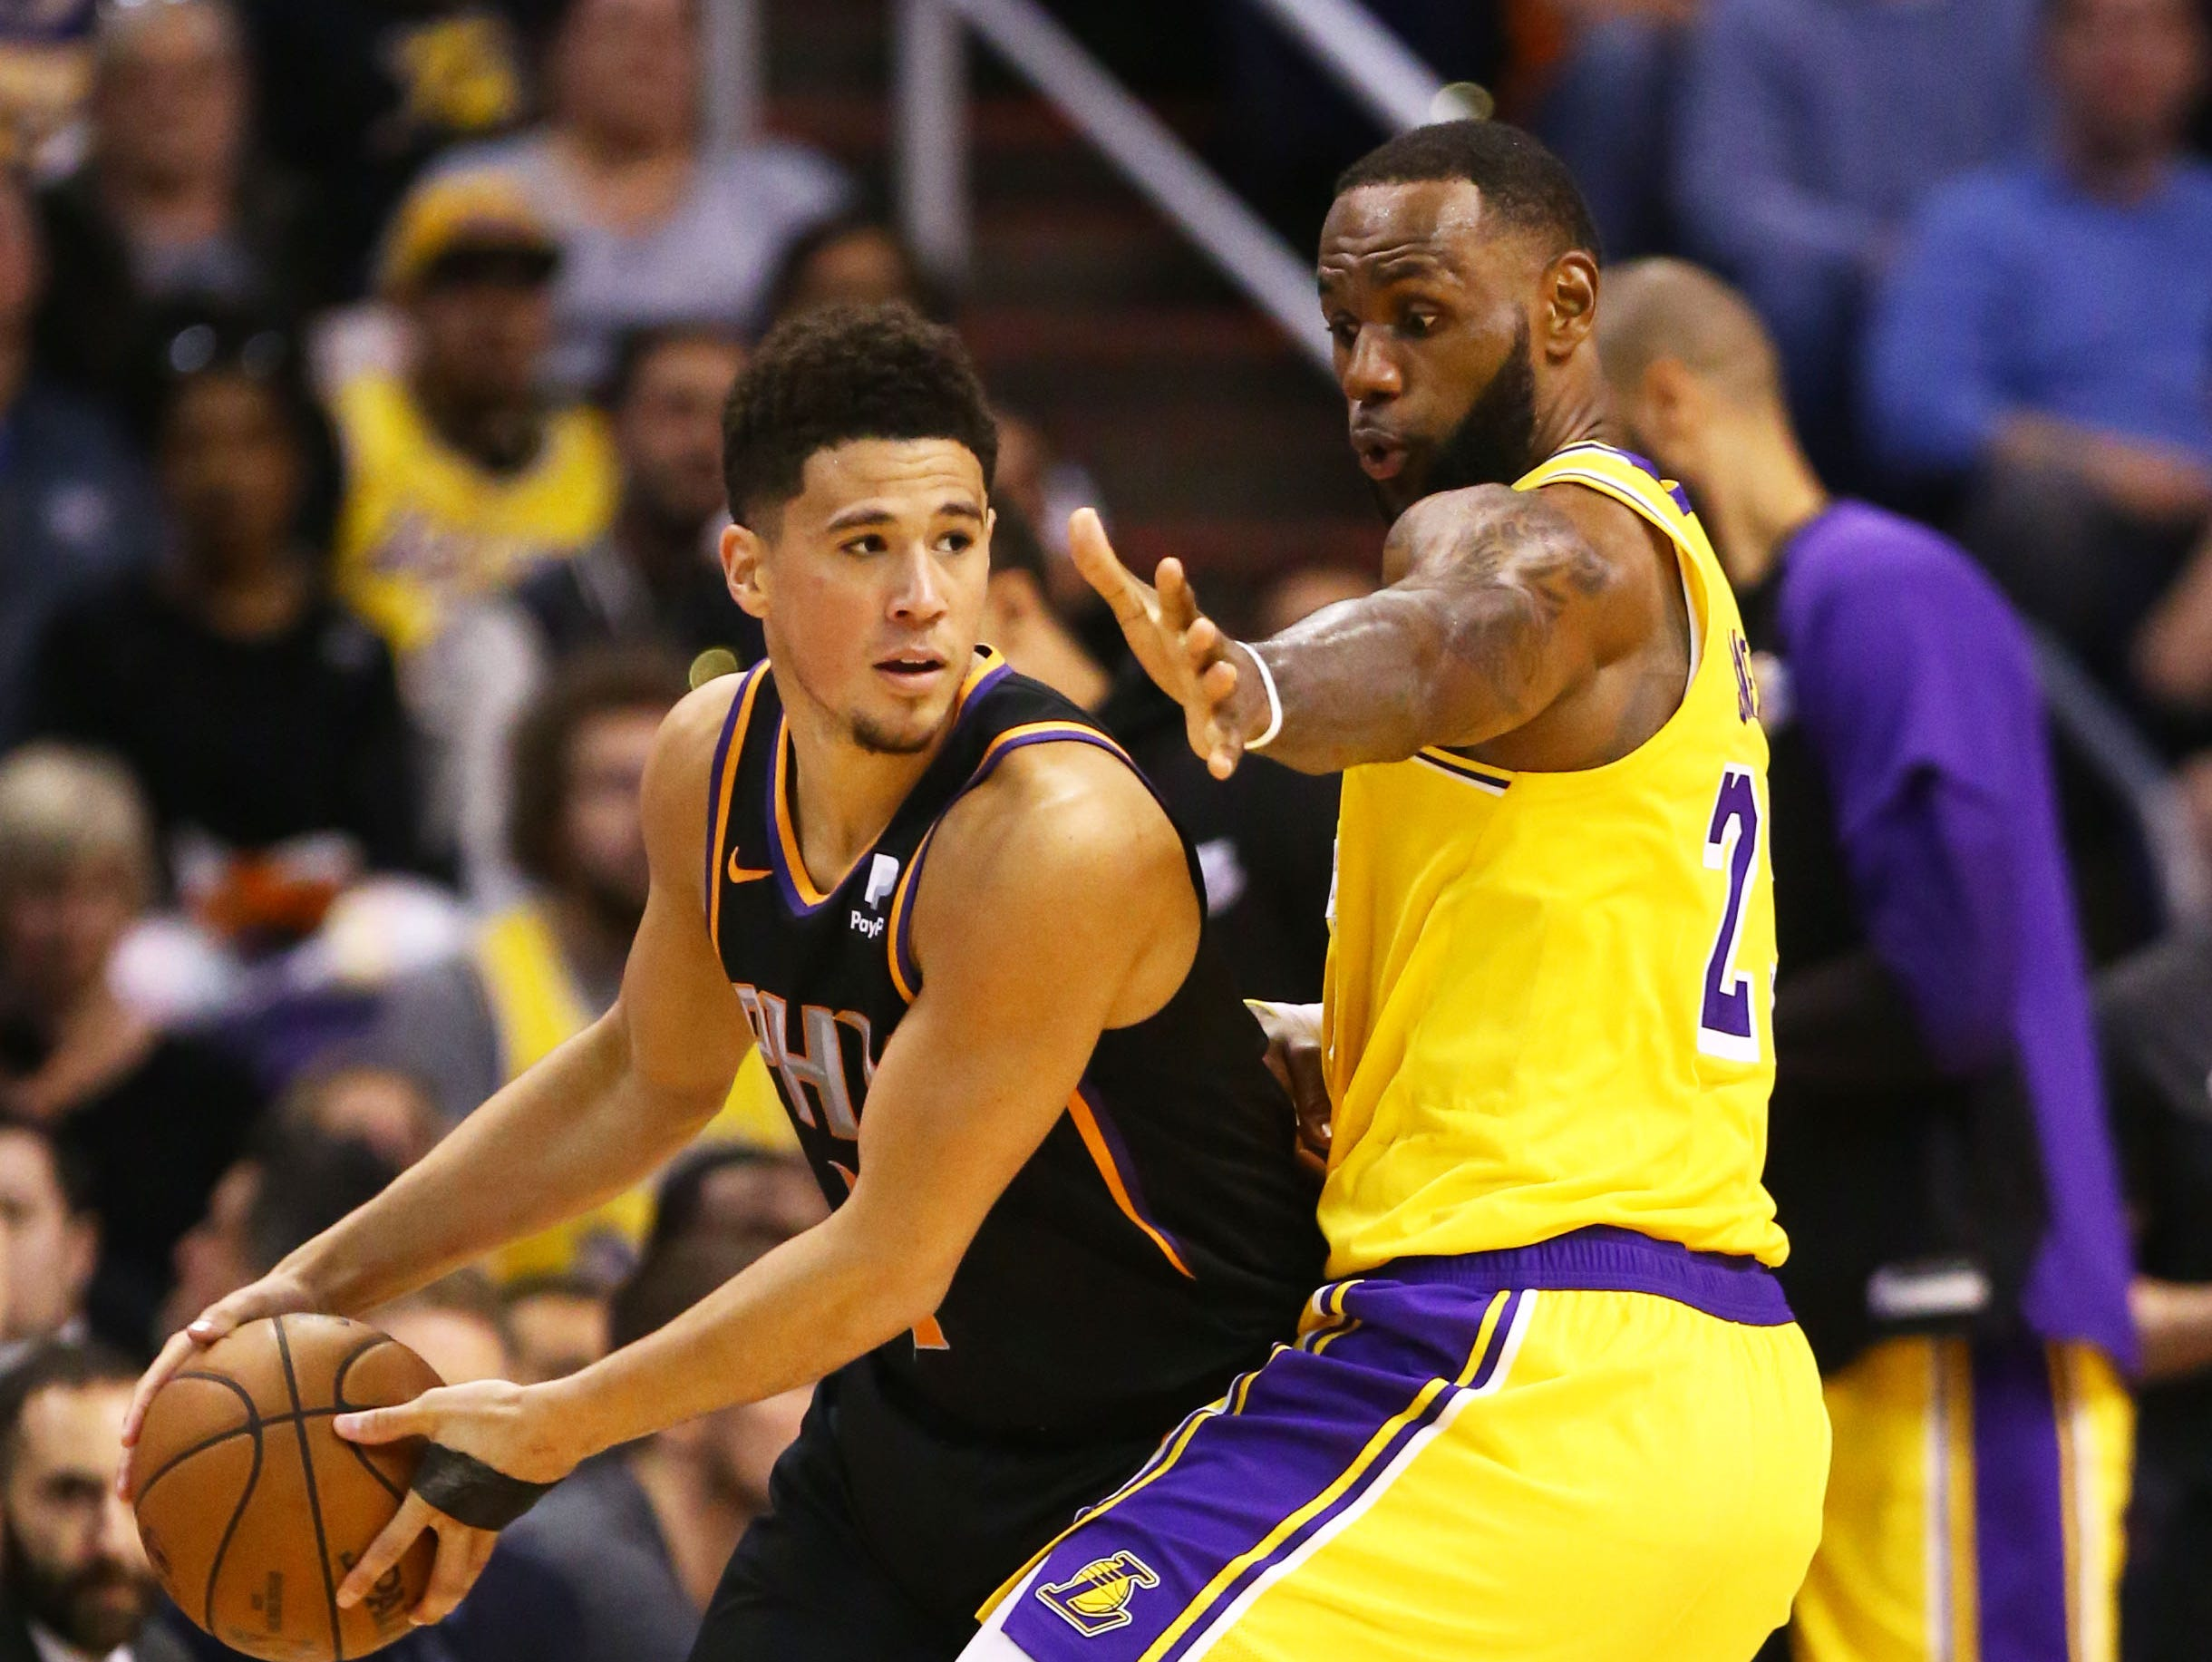 Los Angeles Lakers forward LeBron James (23) pressures Phoenix Suns guard Devin Booker (1) in the second half on Mar. 2, 2019, at Talking Stick Resort Arena in Phoenix, Ariz.